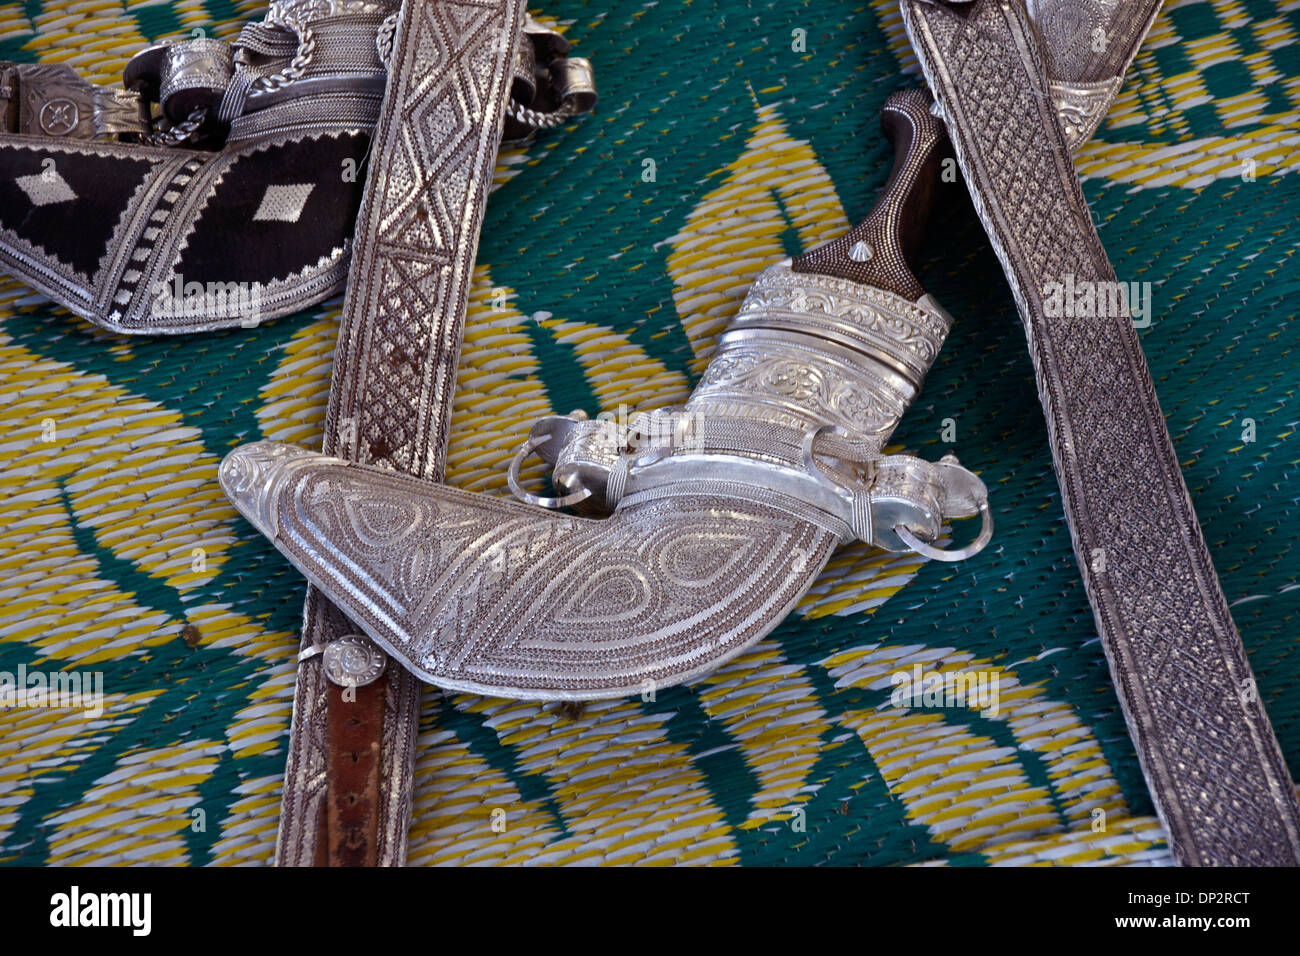 Engraved silver belts and khanjars (daggers) for sale in market, Sinaw, Oman - Stock Image